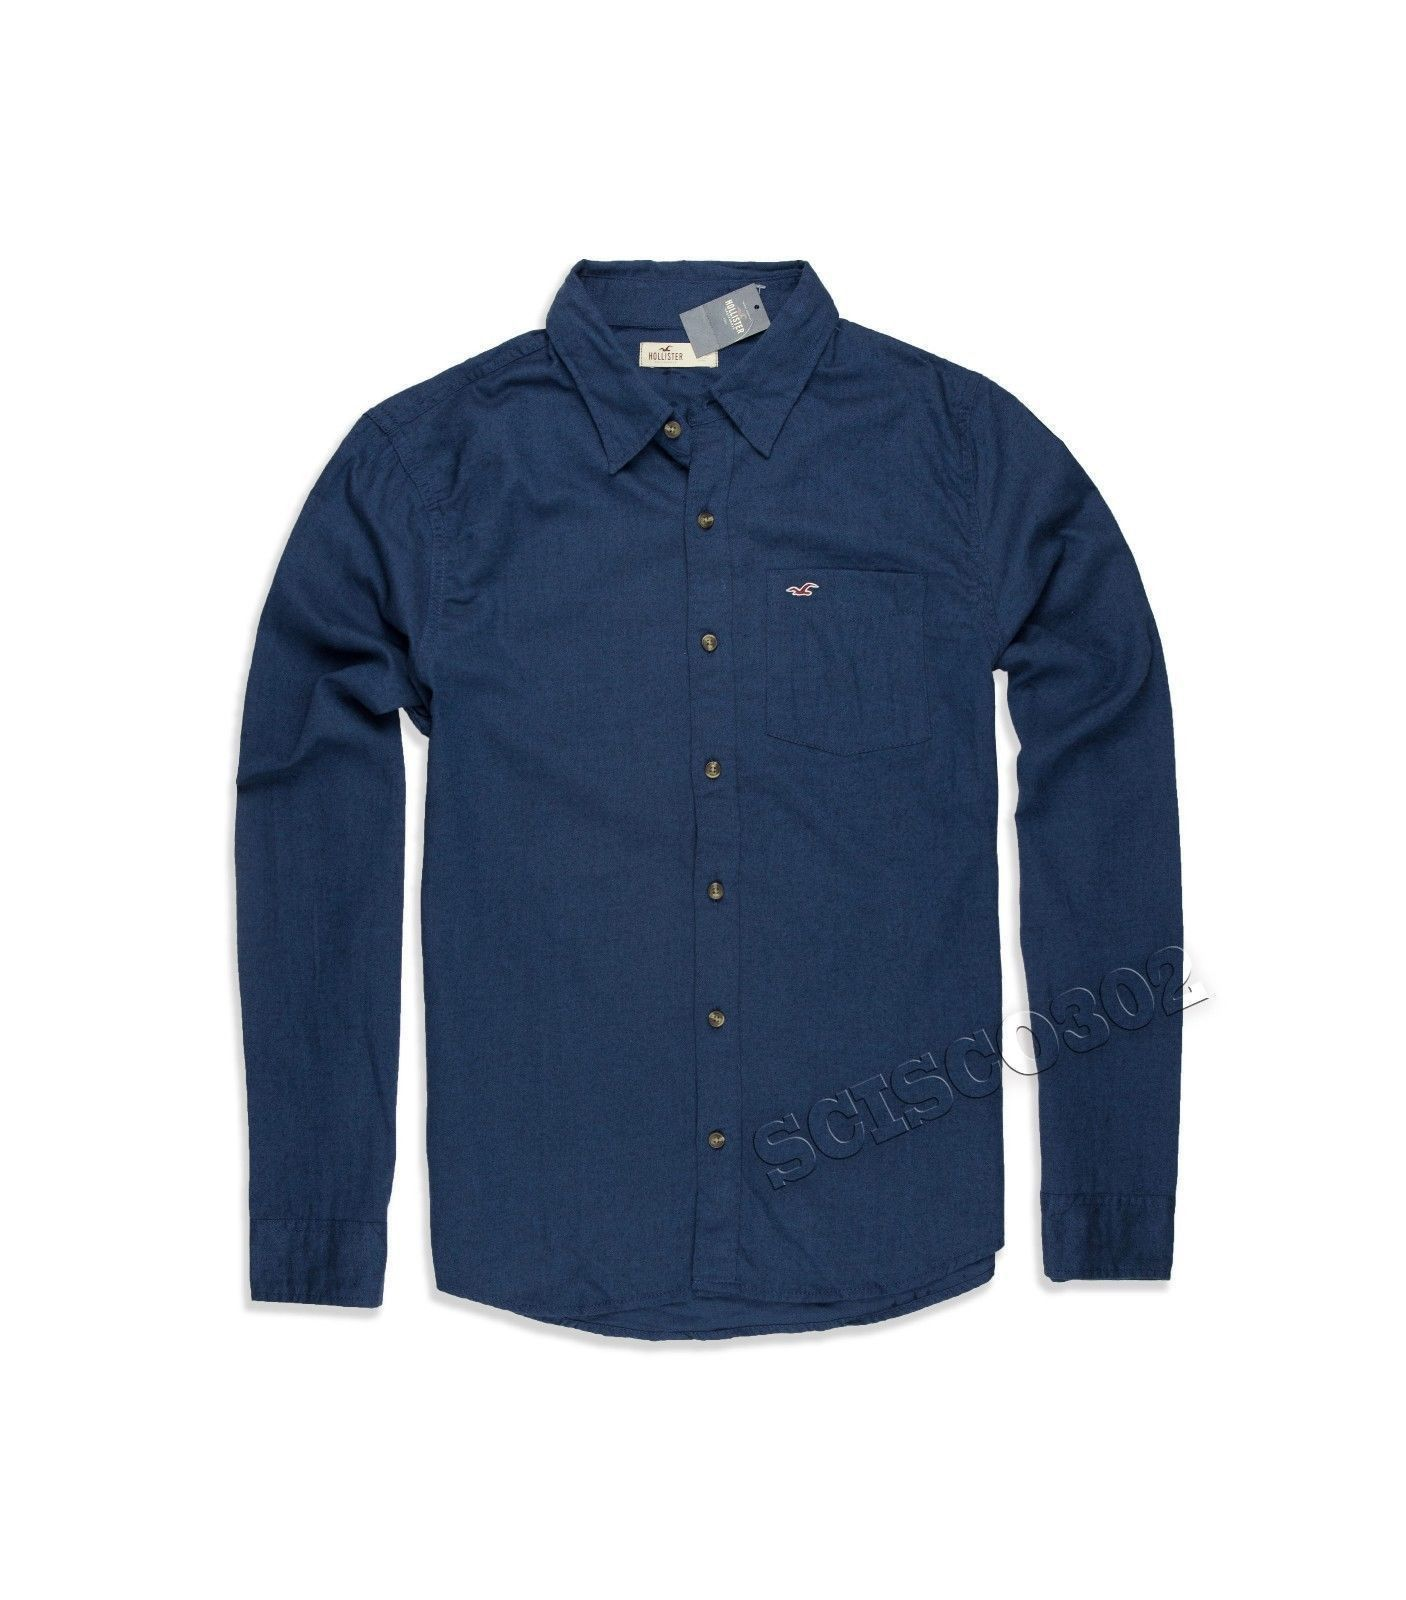 Mens Hollister Button Down Shirt Navy Blue | men's button down ...